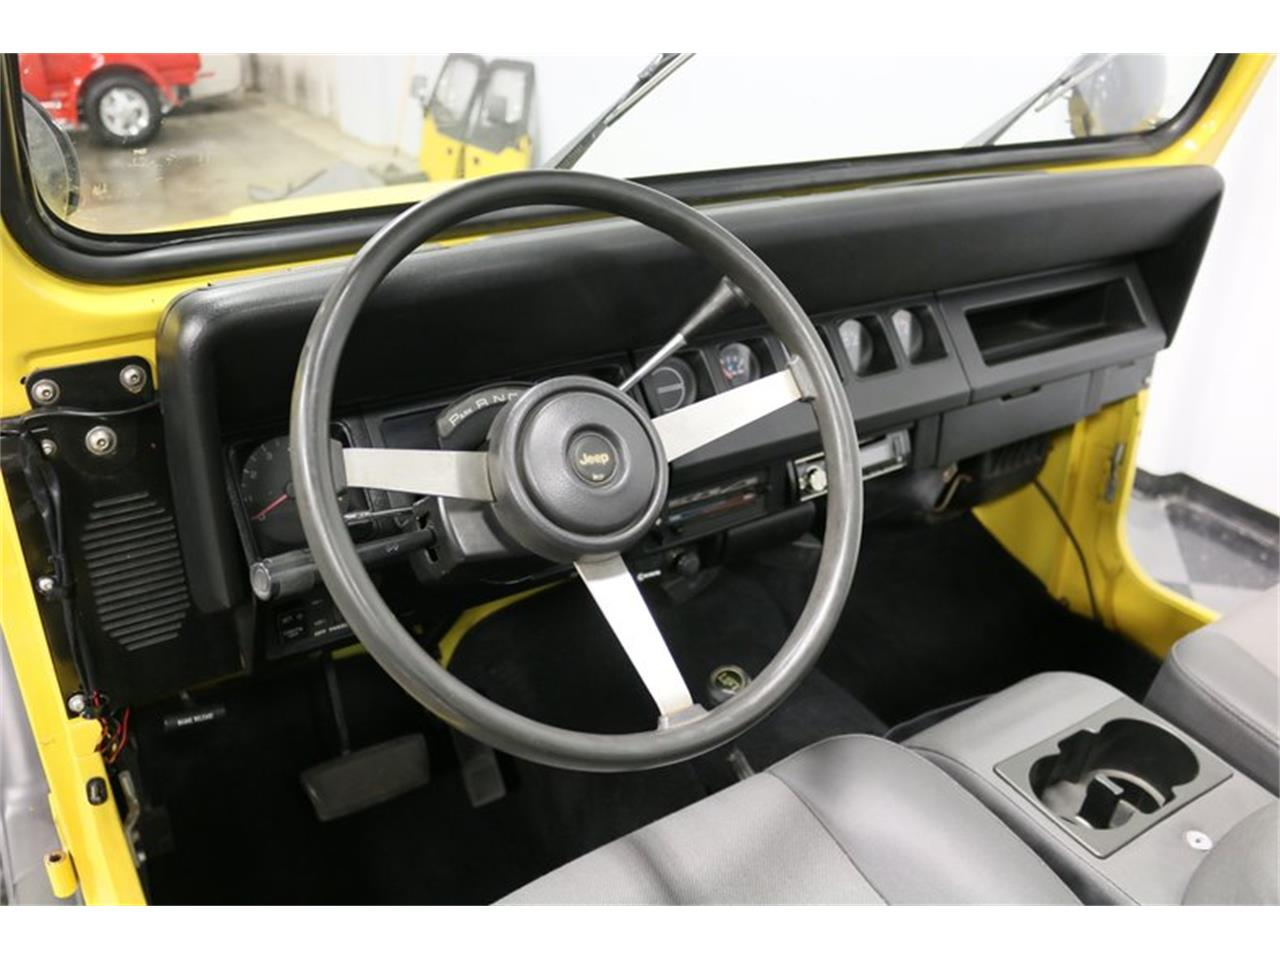 Large Picture of 1993 Wrangler located in Ft Worth Texas - $25,995.00 Offered by Streetside Classics - Dallas / Fort Worth - P701